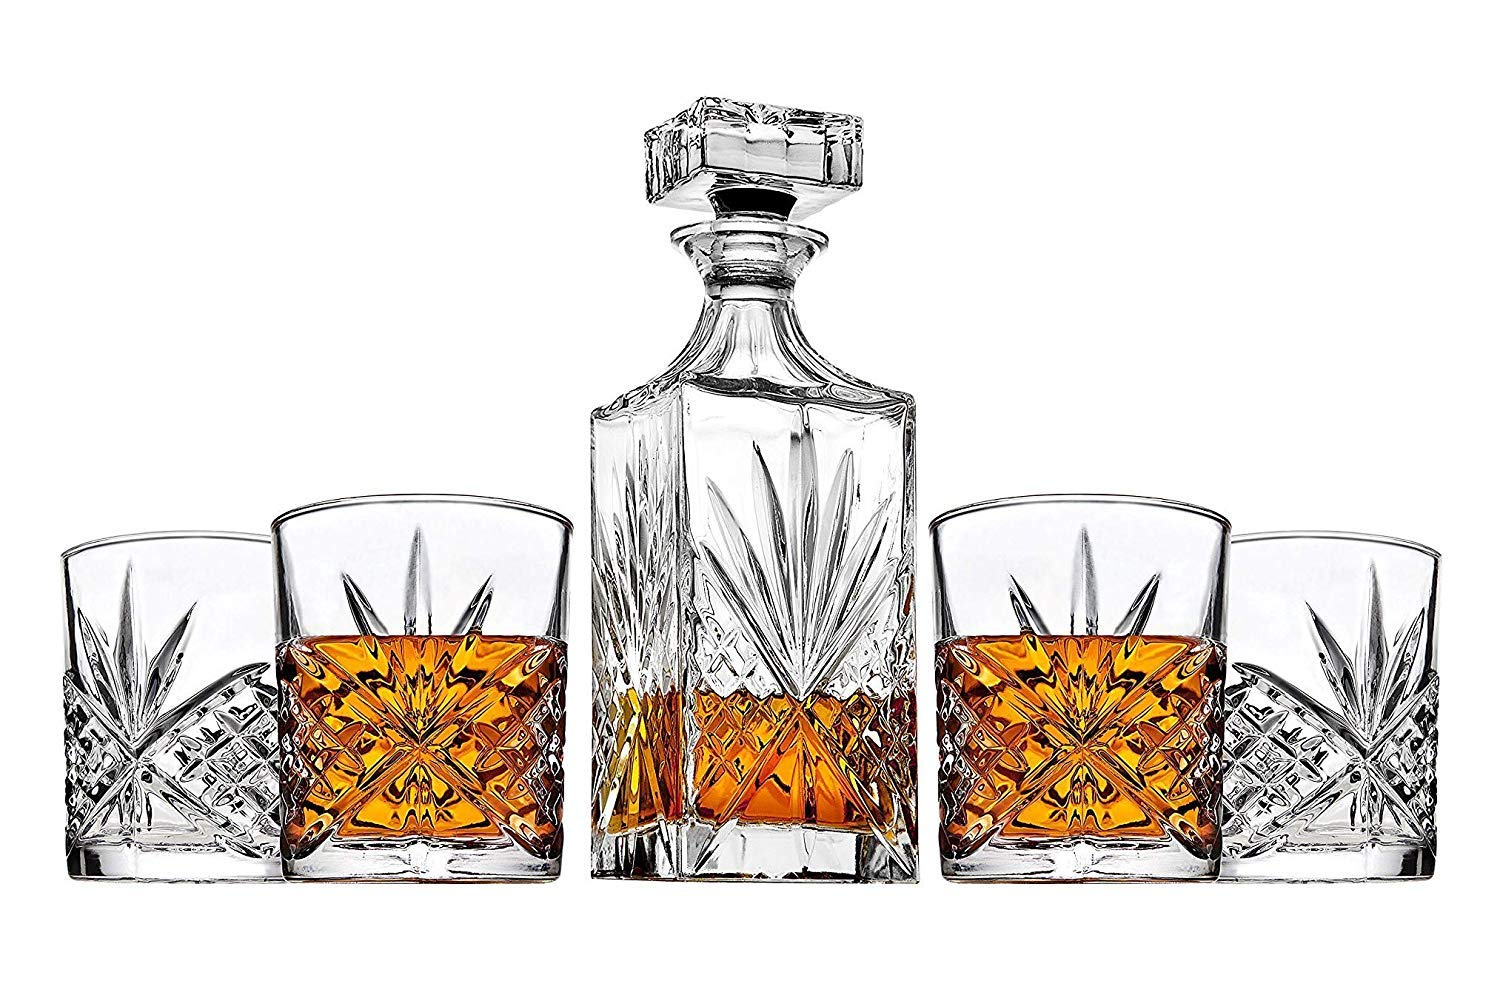 James Scott 5-Piece Decanter Set - Perfect for Liquor, Whiskey, Wine and Bourbon - Crystal Irish Cut Set Includes 1 x 25 oz. Decanter and 4 x 11 oz. Glasses   Packaged in a Beautiful Gift Box by James Scott